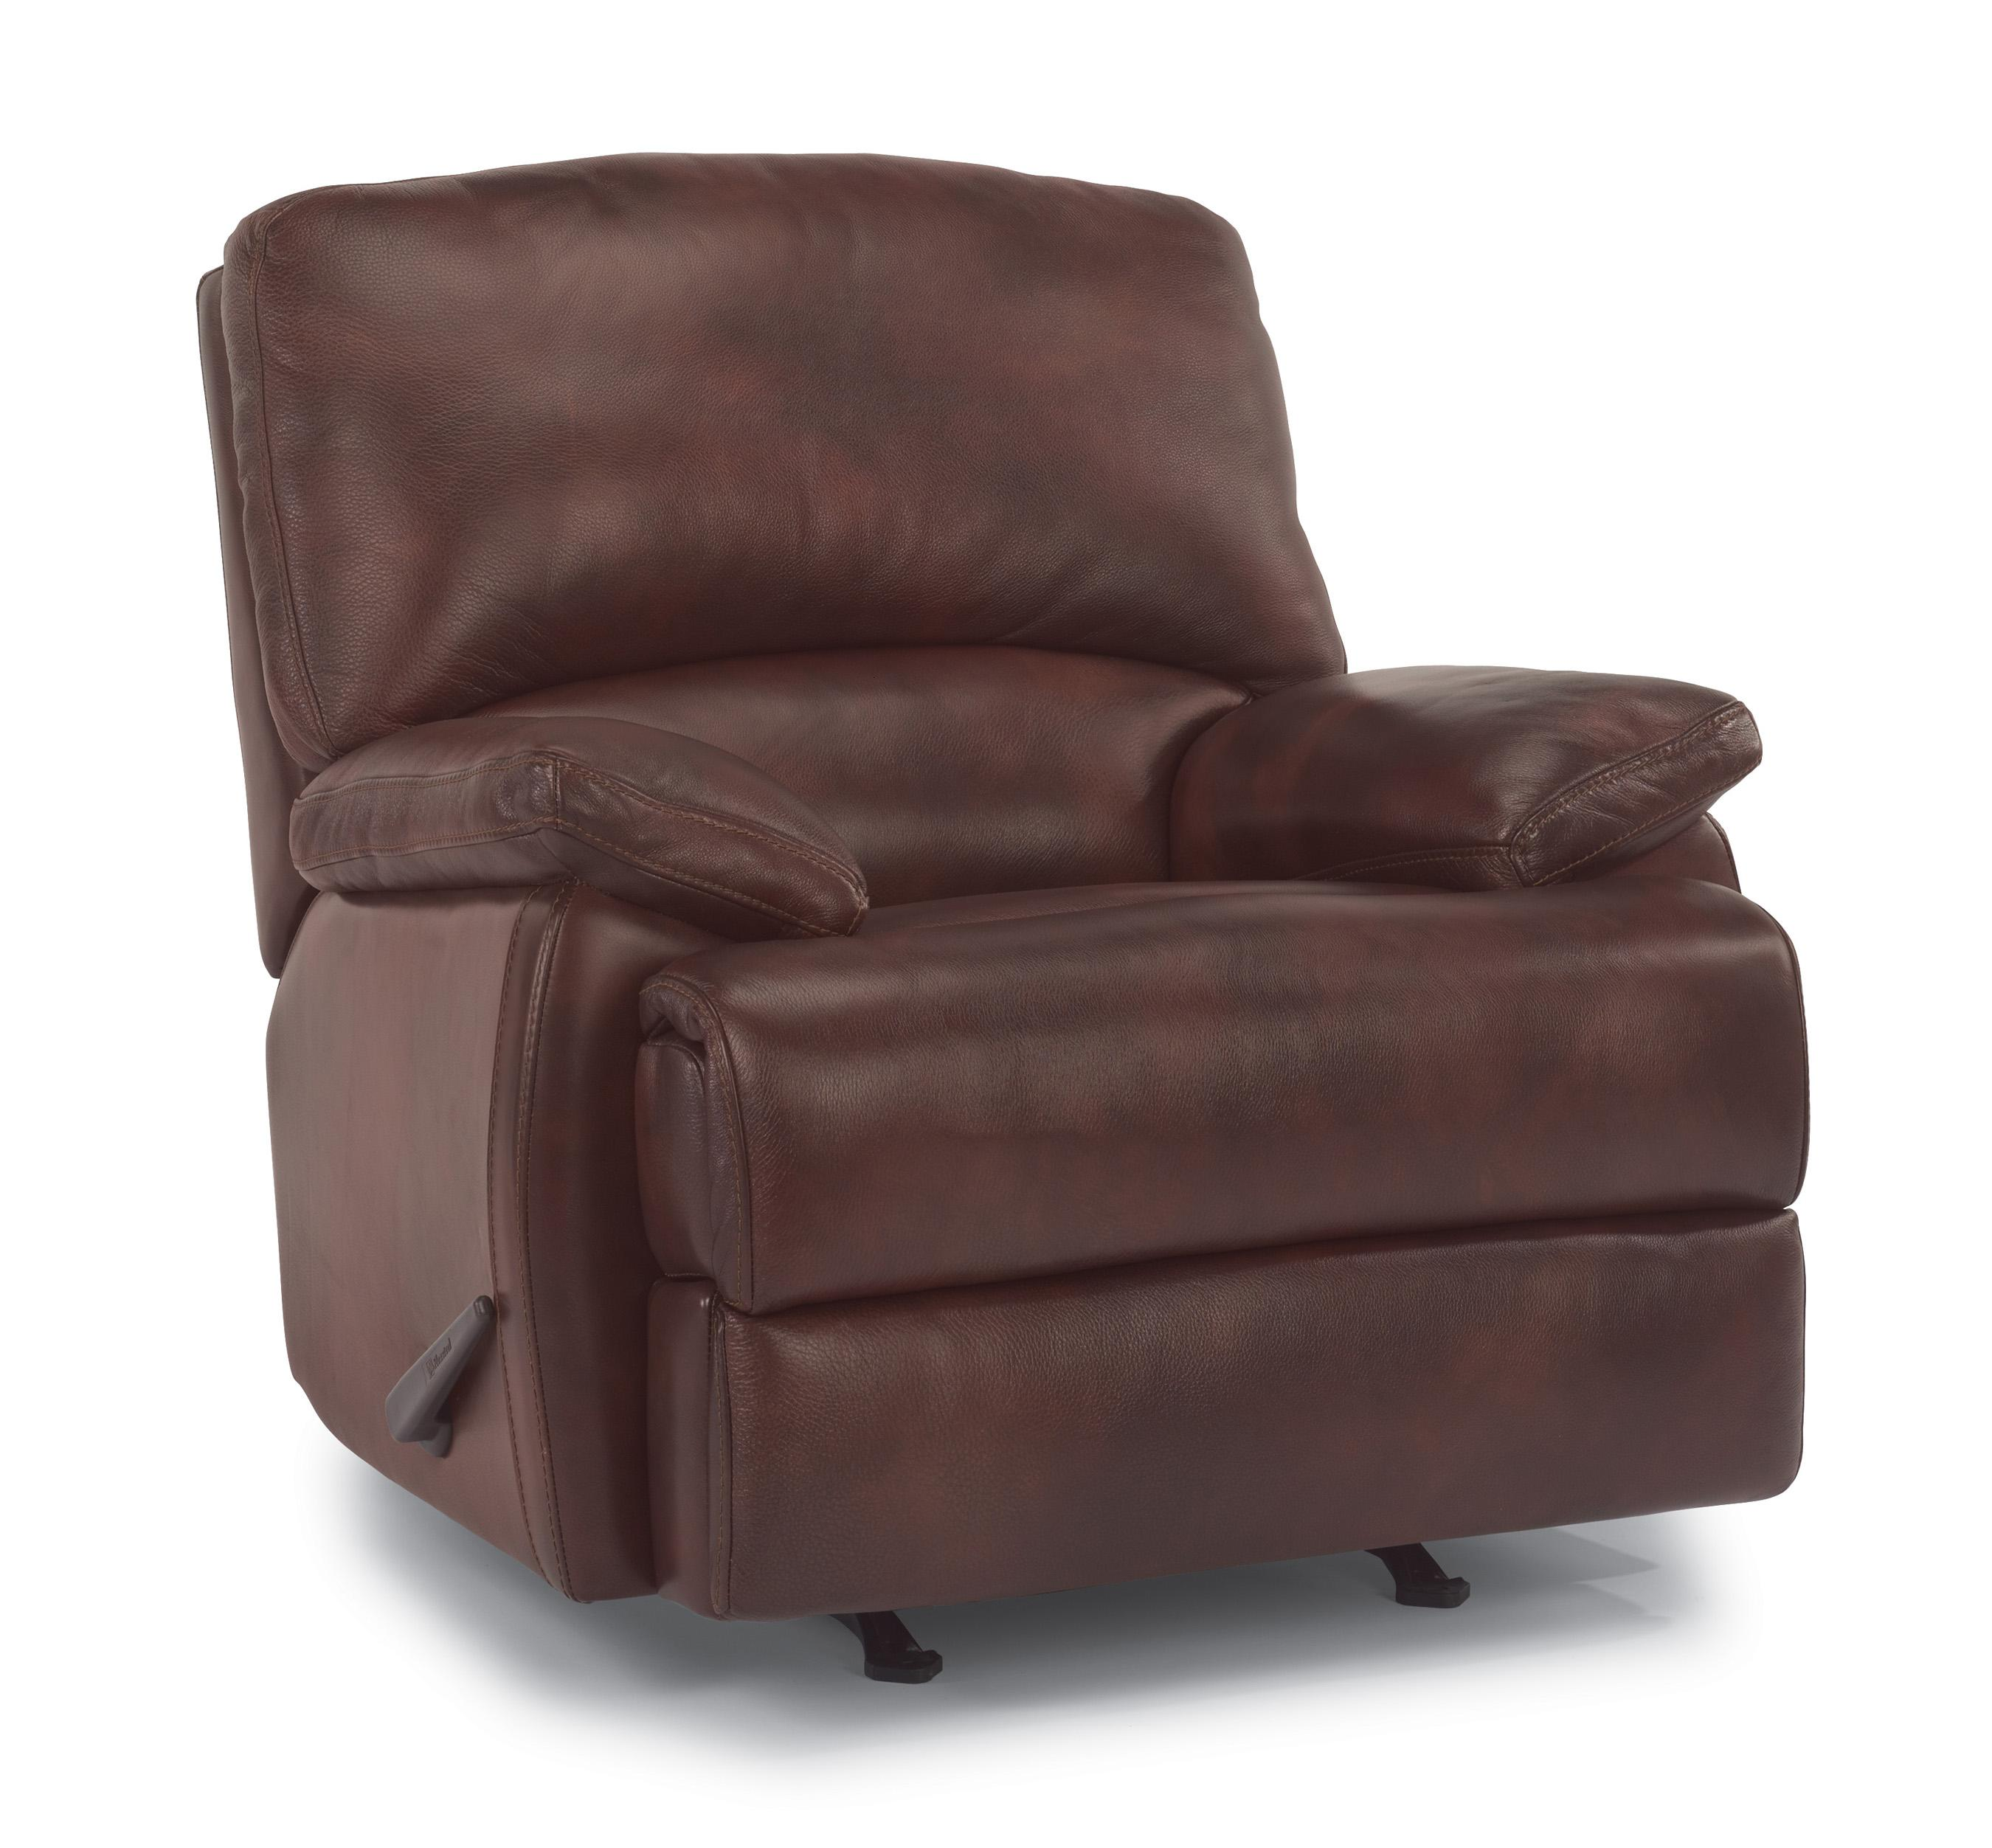 Flexsteel Latitudes - Dylan Leather Rocker Recliner - Reeds Furniture ...